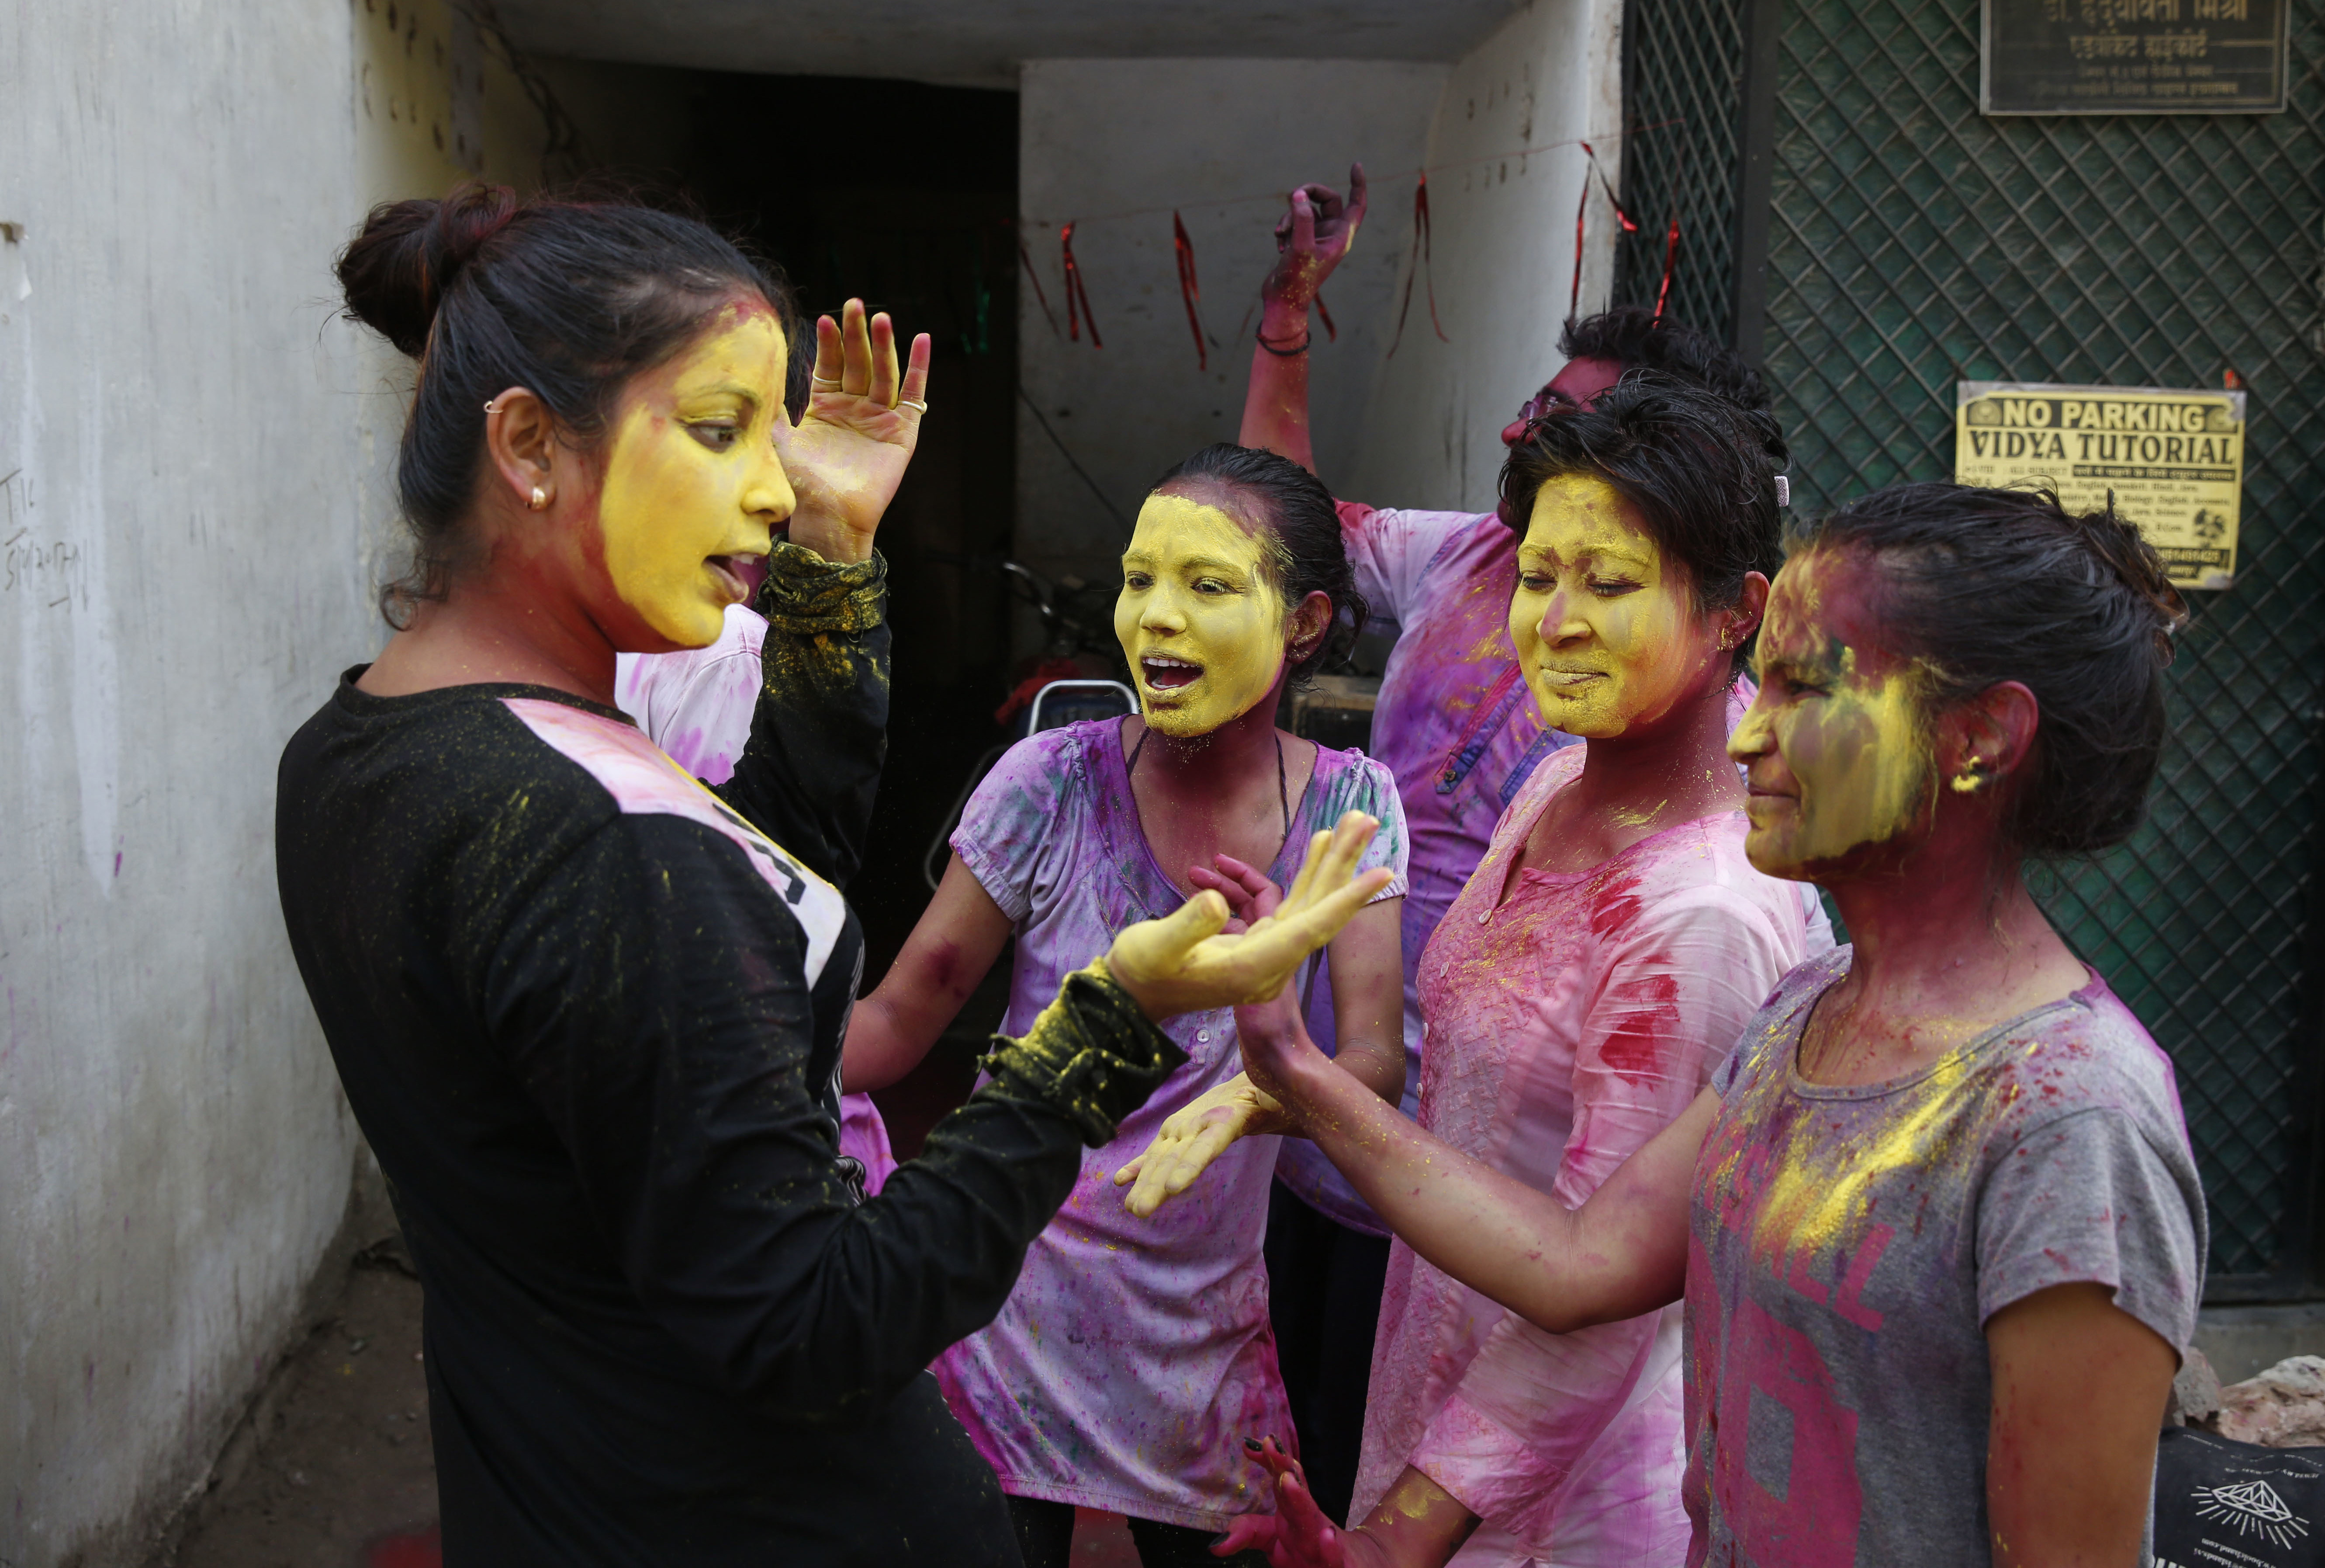 Indian revelers, faces smeared with colored powder, celebrate Holi, the Hindu festival of colors in Allahabad, India, Friday, March 2, 2018. The festival, a celebration of warm weather, good harvests and the defeat of evil, brings out millions of people, from toddlers to the elderly, to throw powder at one another and play with water balloons and squirt guns. (AP Photo/Rajesh Kumar Singh)